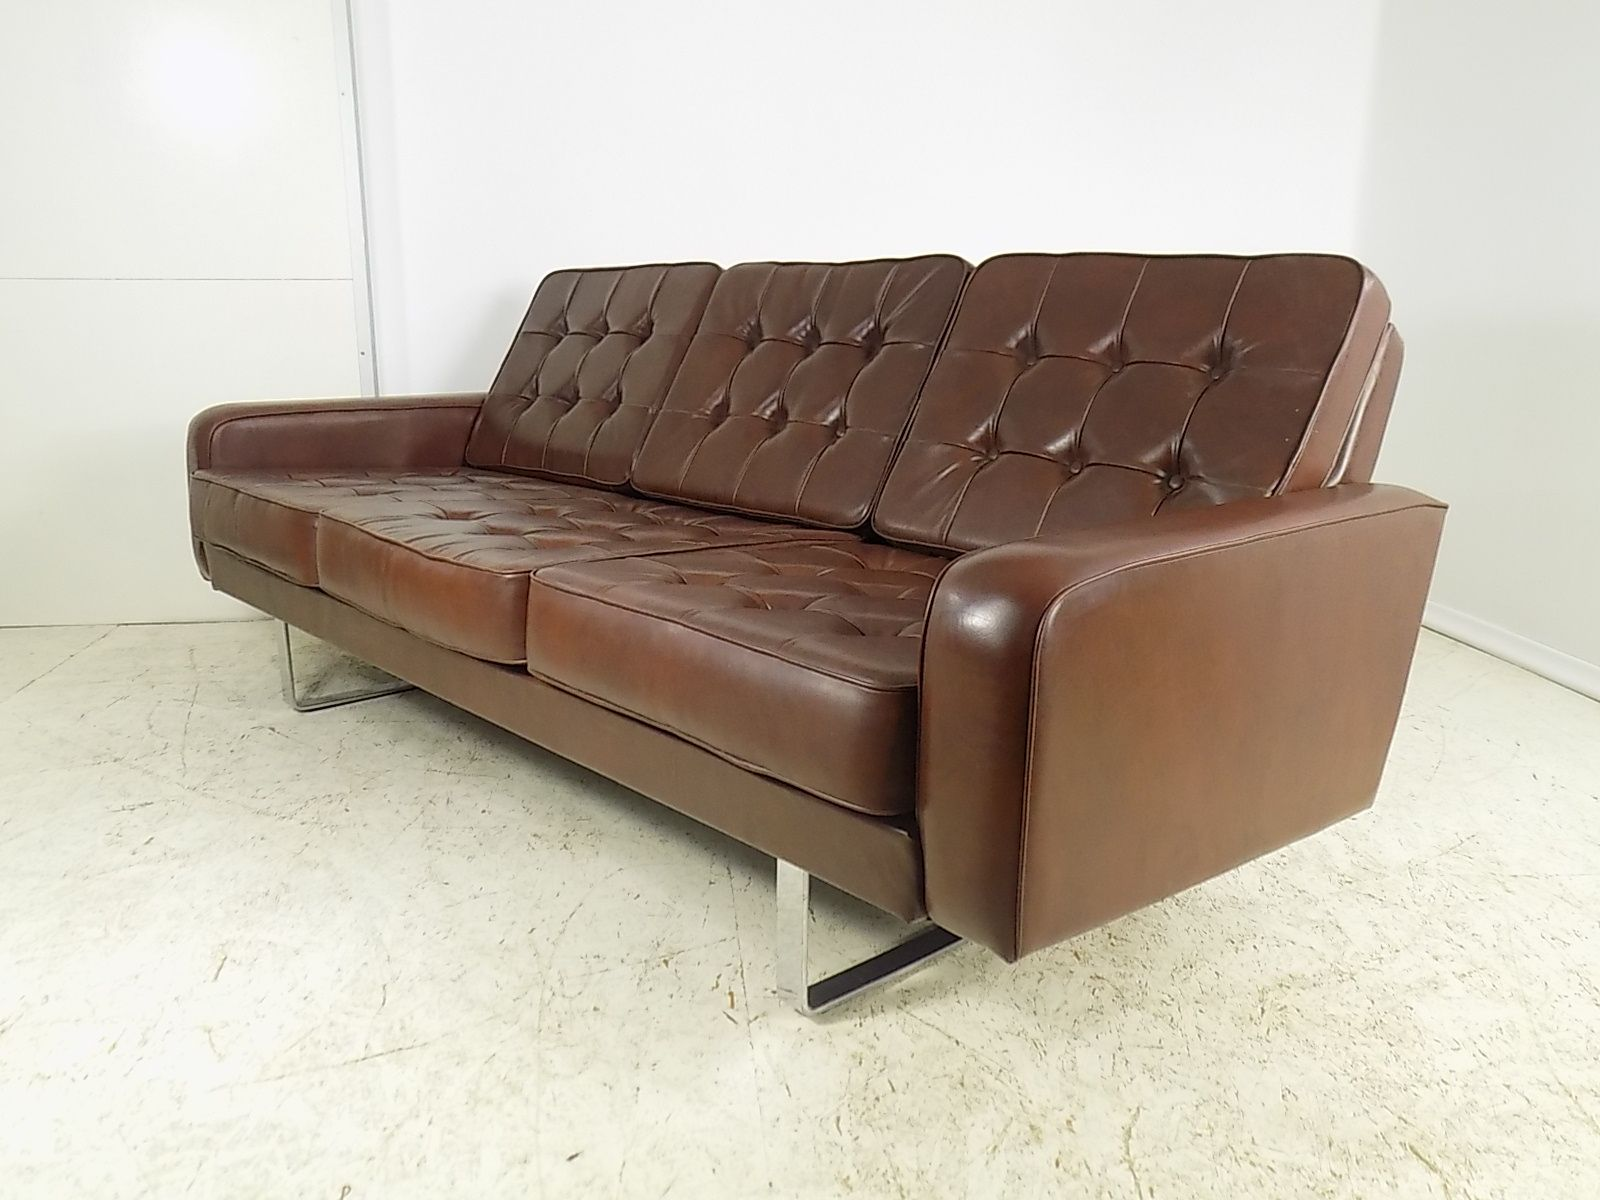 deutsches vintage 3 sitzer sofa 1970er bei pamono kaufen. Black Bedroom Furniture Sets. Home Design Ideas